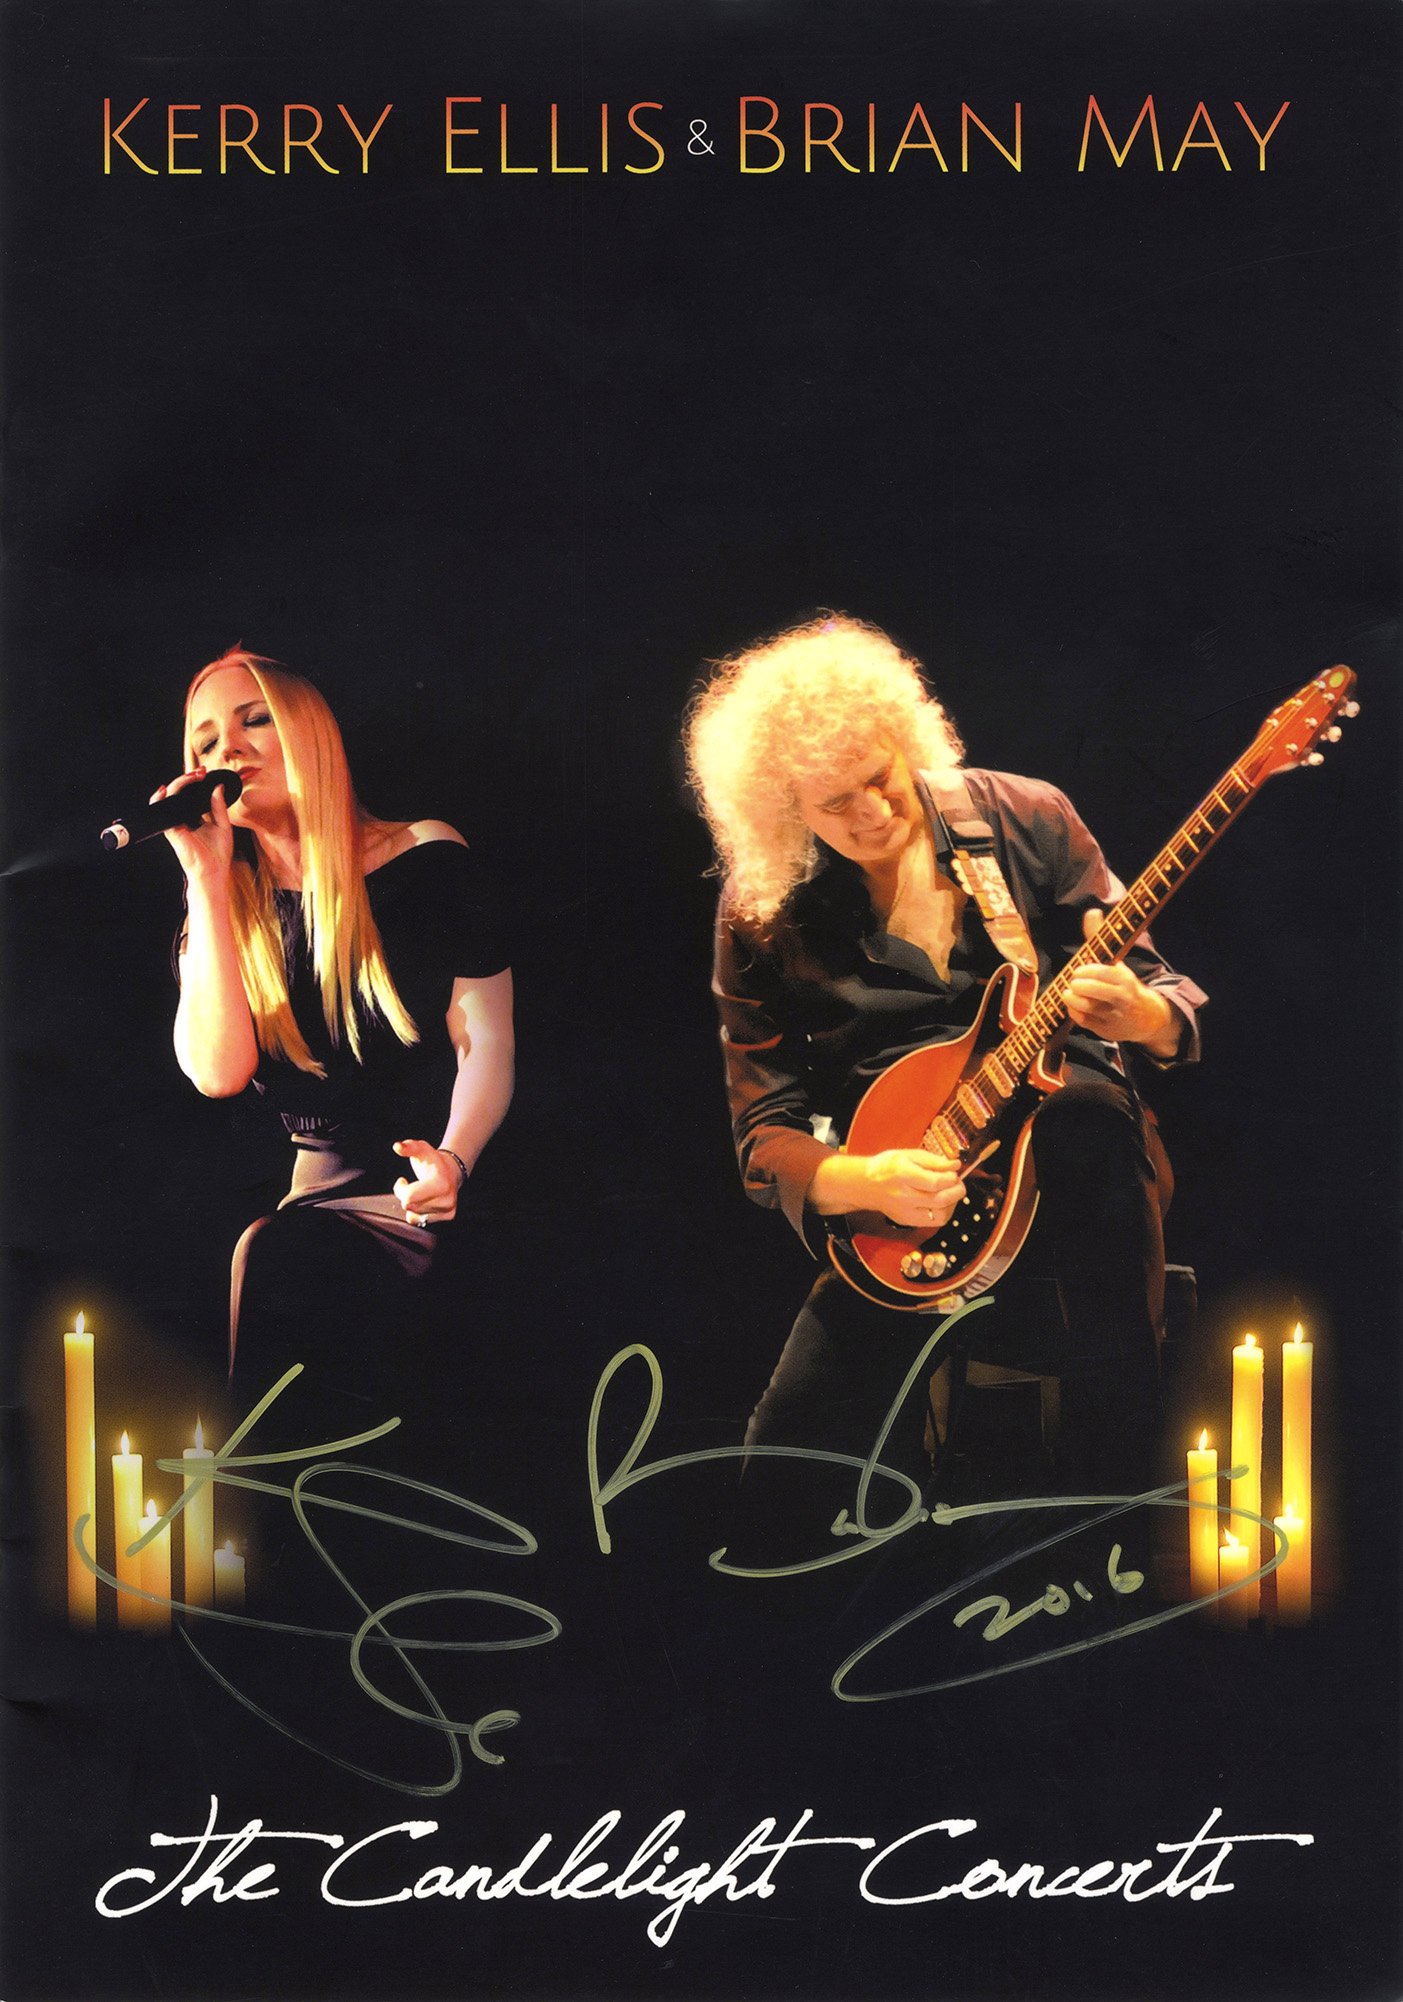 Brian May + Kerry Ellis - The Candlelight Concerts 2014-2016